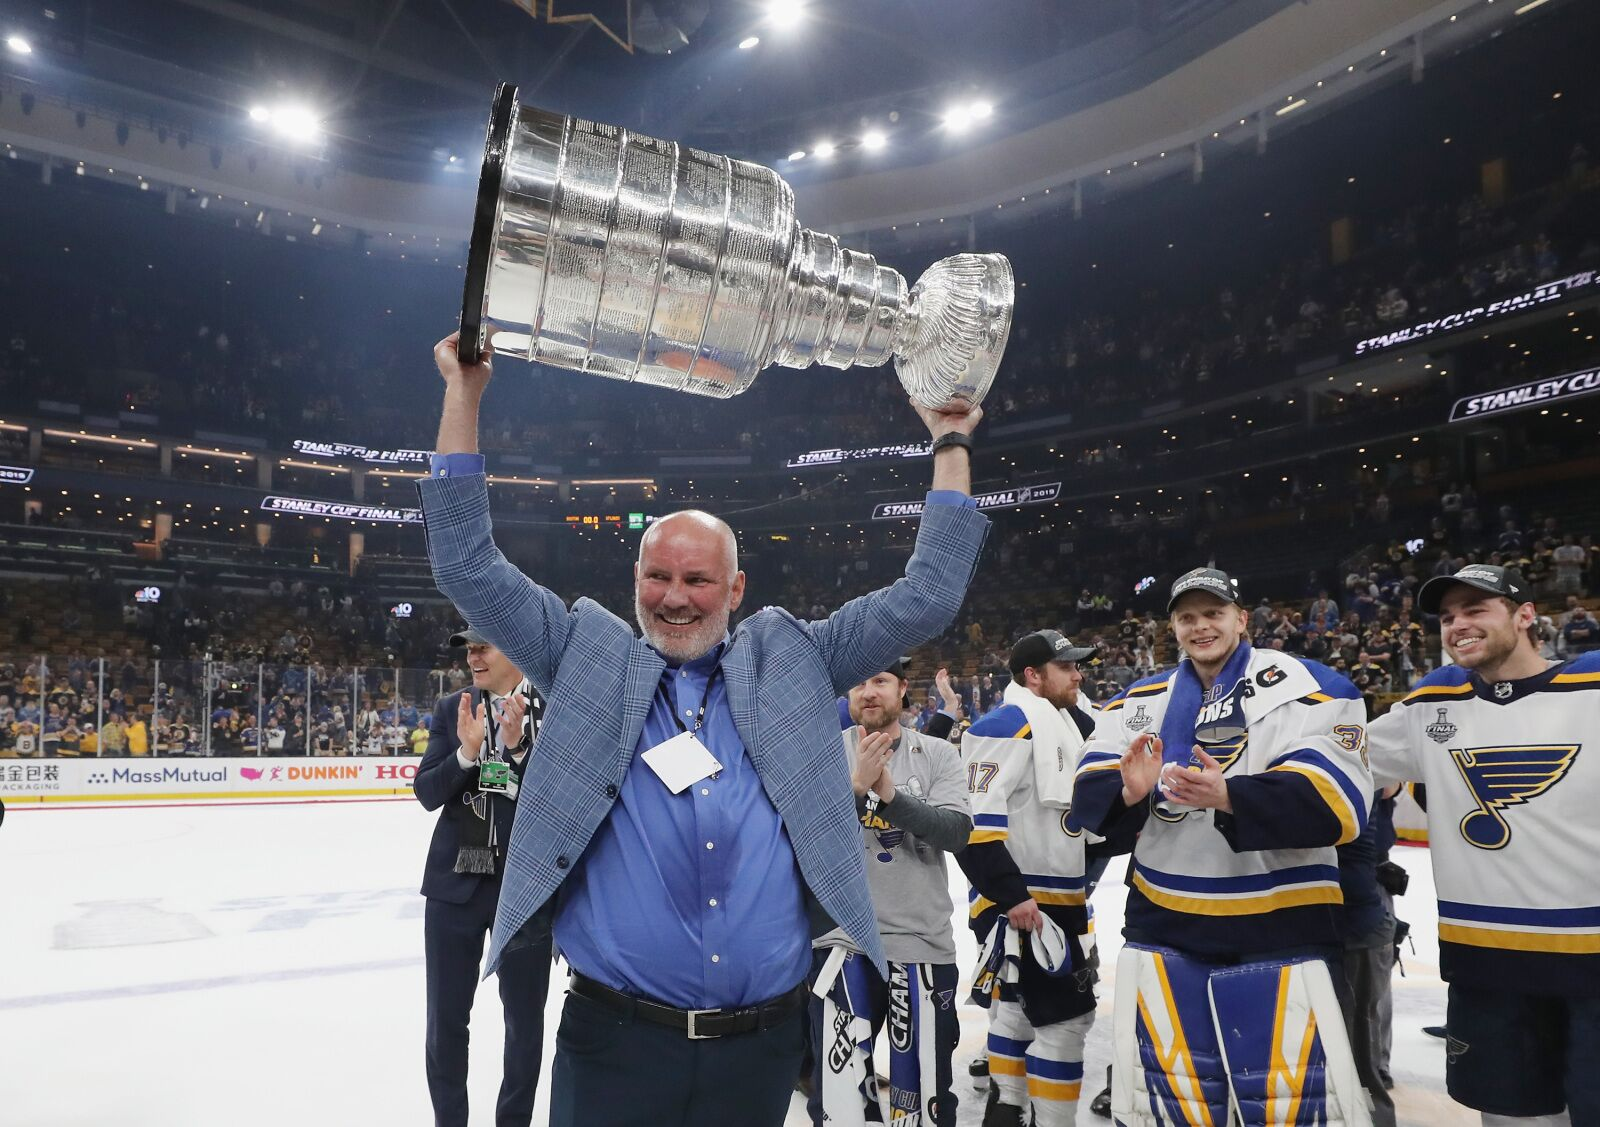 St. Louis Blues: Doug Armstrong Has His Fingerprints All Over The Cup